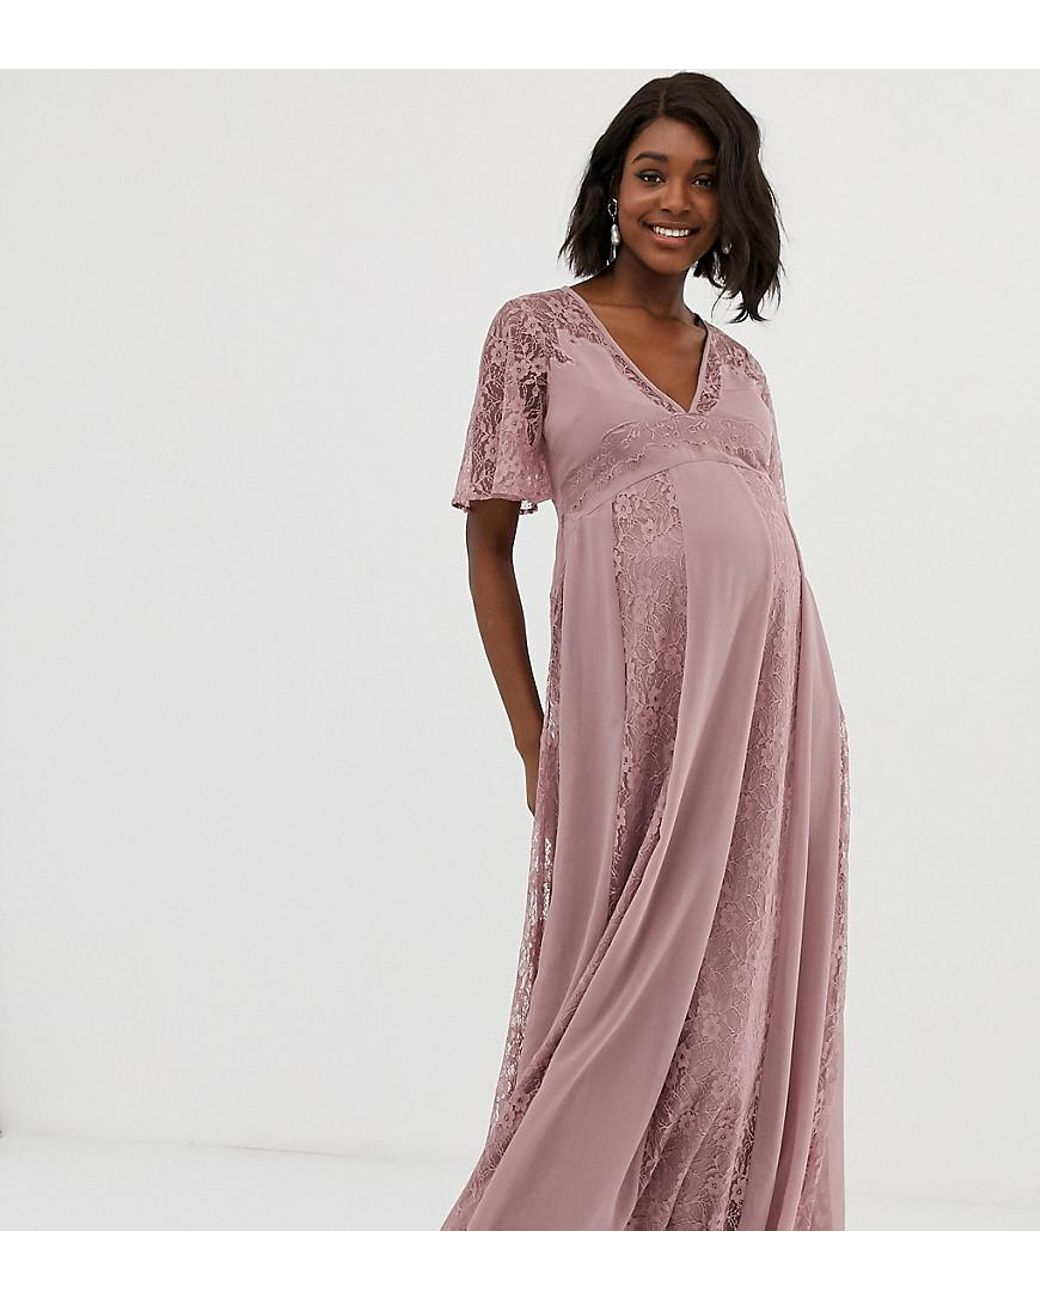 7b4499f45a7 Lyst - ASOS Asos Design Maternity Maxi Dress With Flutter Sleeve And All  Over Lace Insert in Pink